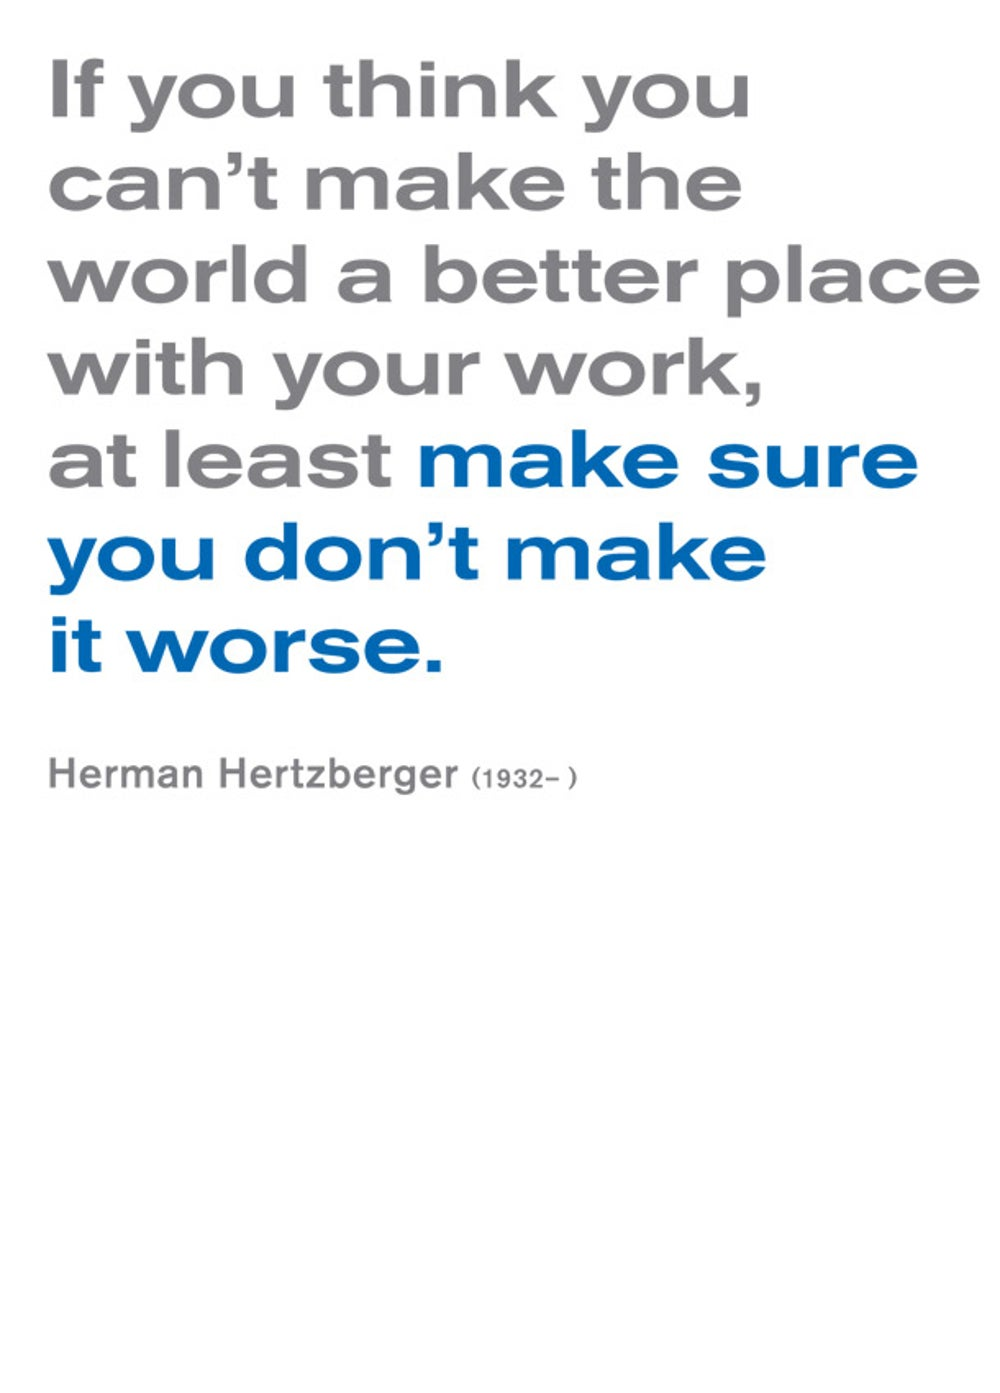 Herman Hertzberger on purpose.